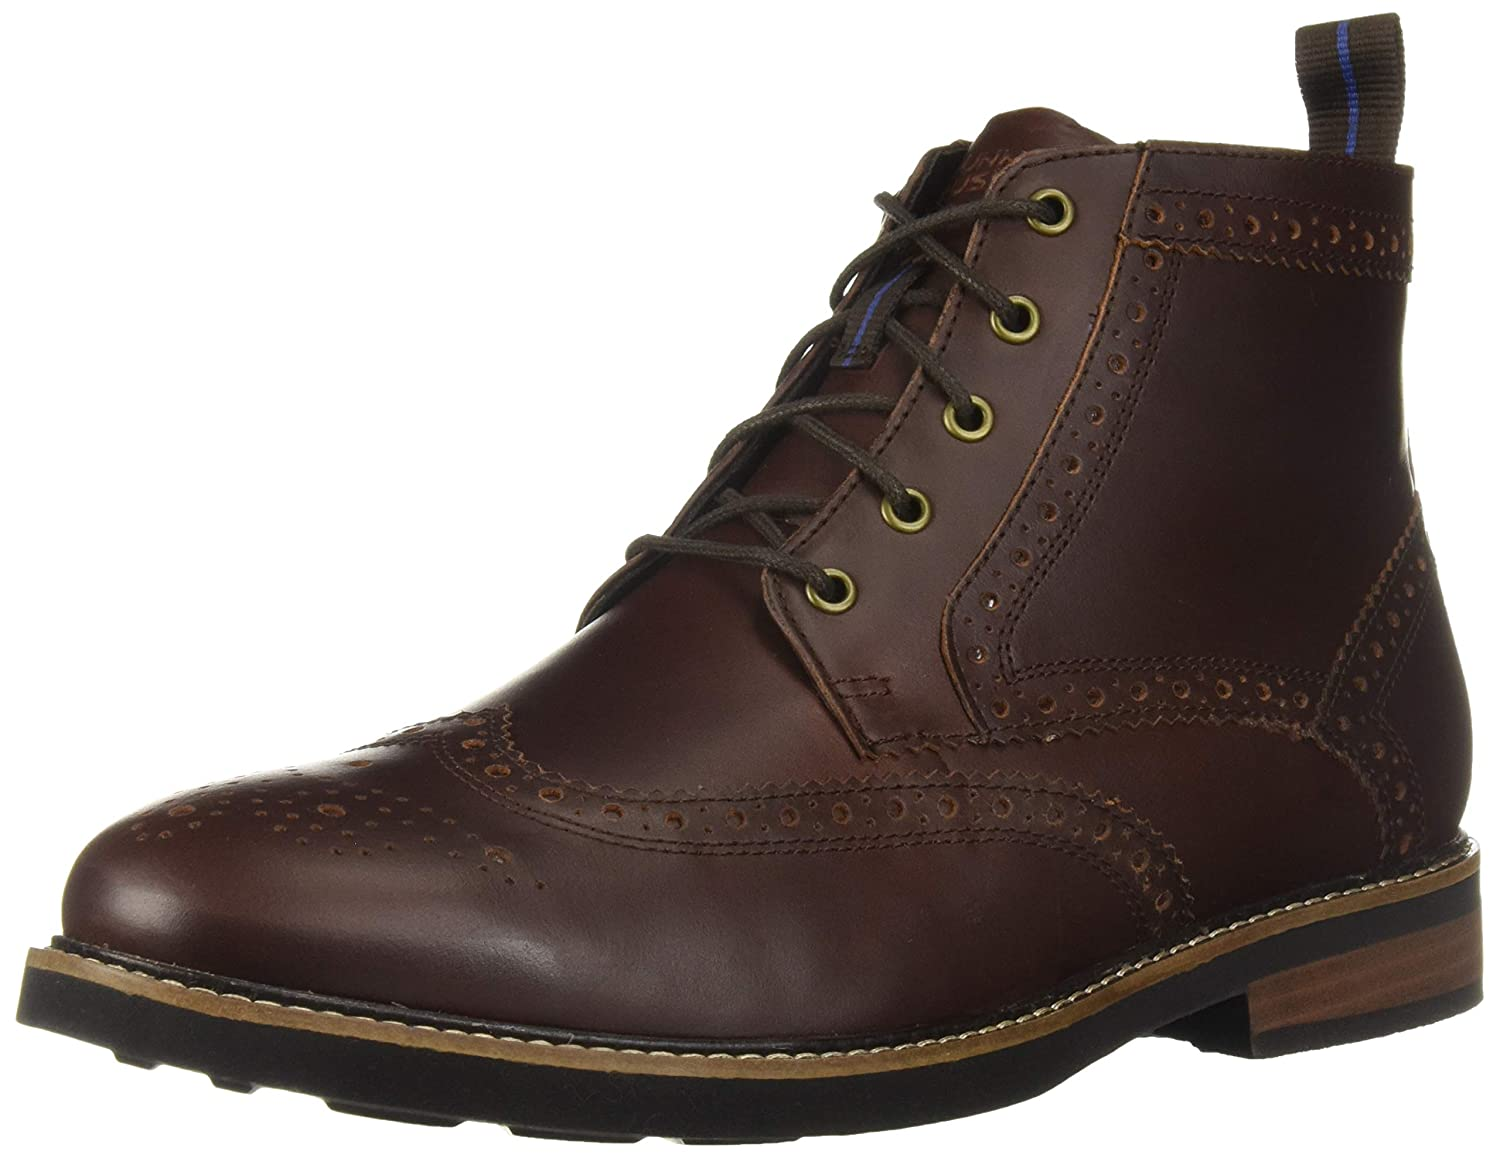 61c36ccda18 Nunn Bush Men's Odell Wingtip Boot with KORE Walking Comfort Technology